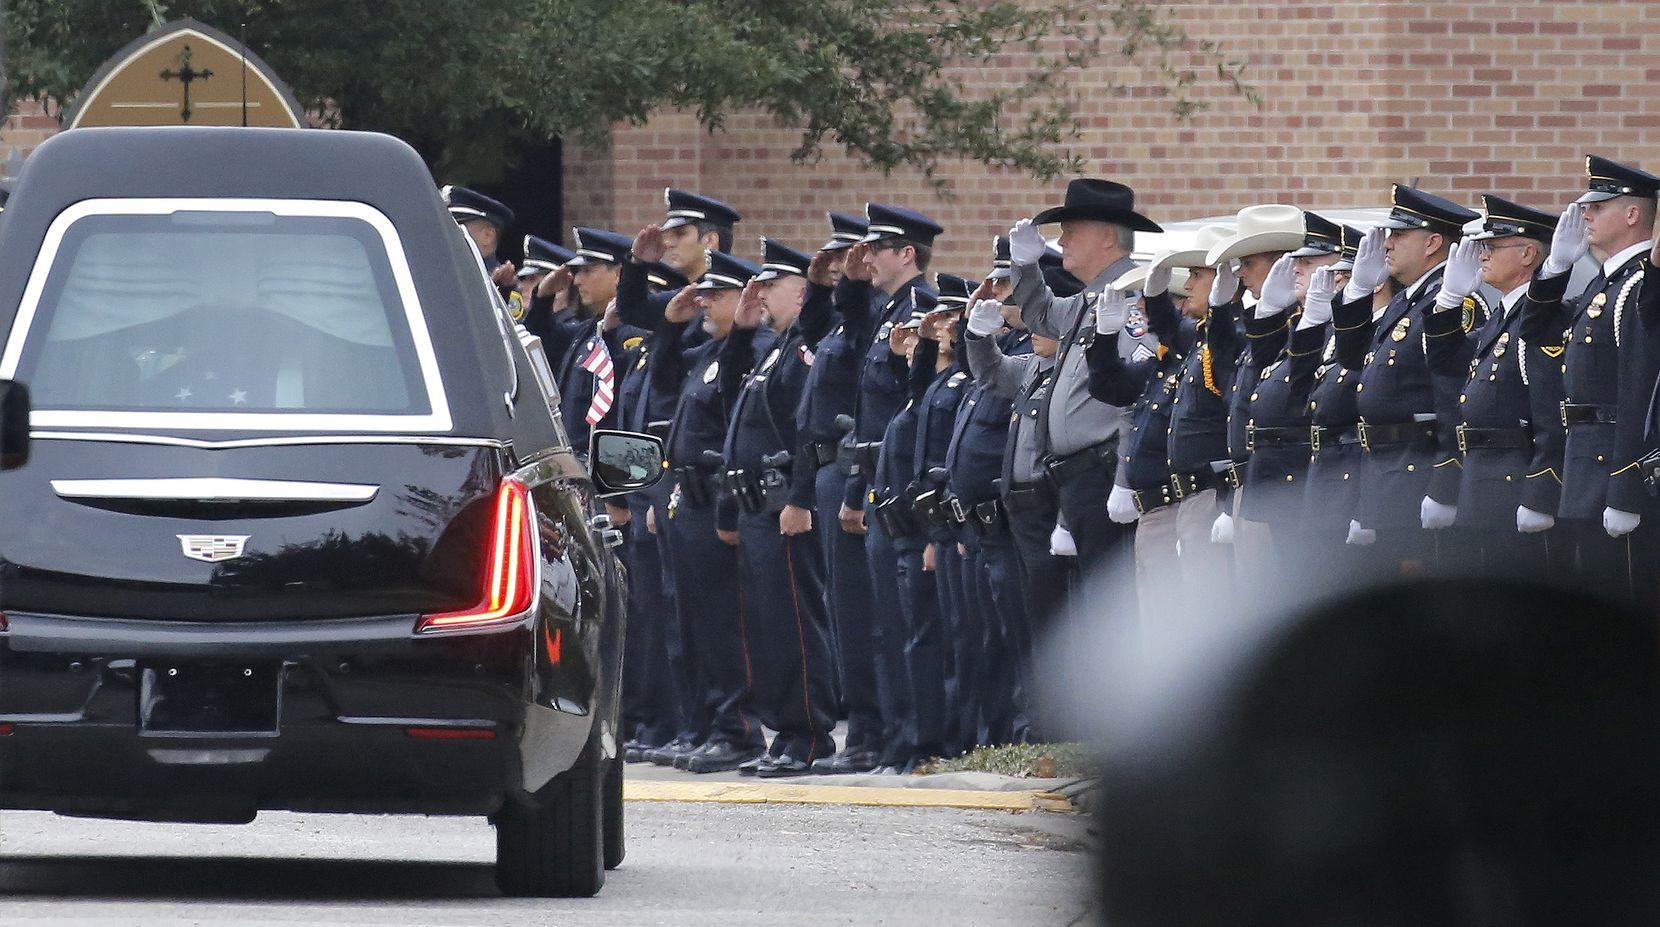 Law enforcement officers salute as the hearse drives slowly away from the church after the funeral service for George H.W. Bush, the 41st President of the United States, at St. Martin's Episcopal Church in Houston on Thursday, December 6, 2018. (Louis DeLuca/The Dallas Morning News)